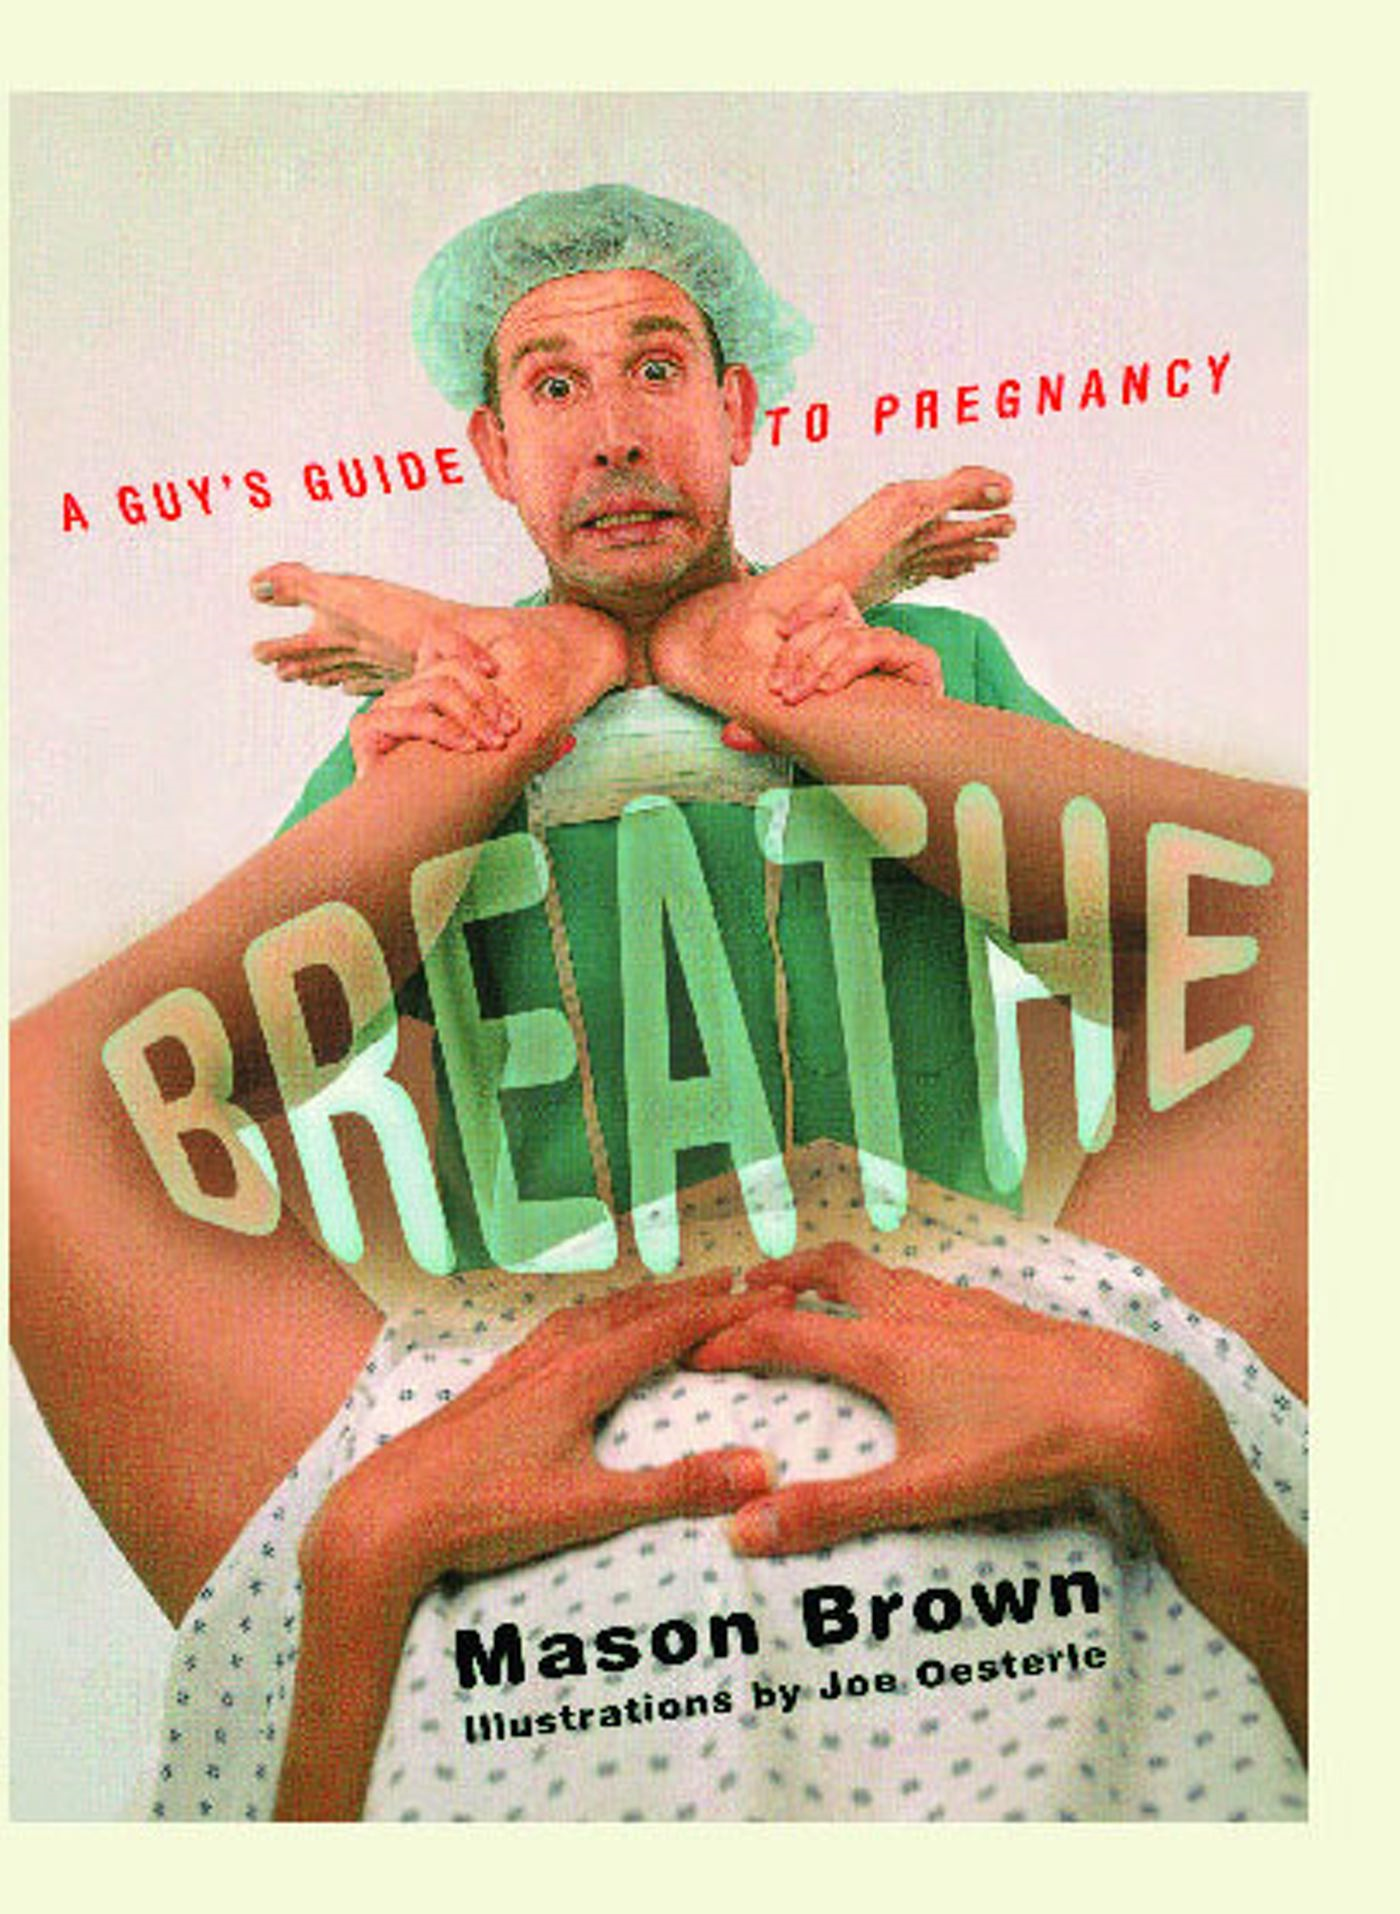 Breathe A Guy's Guide to Pregnancy